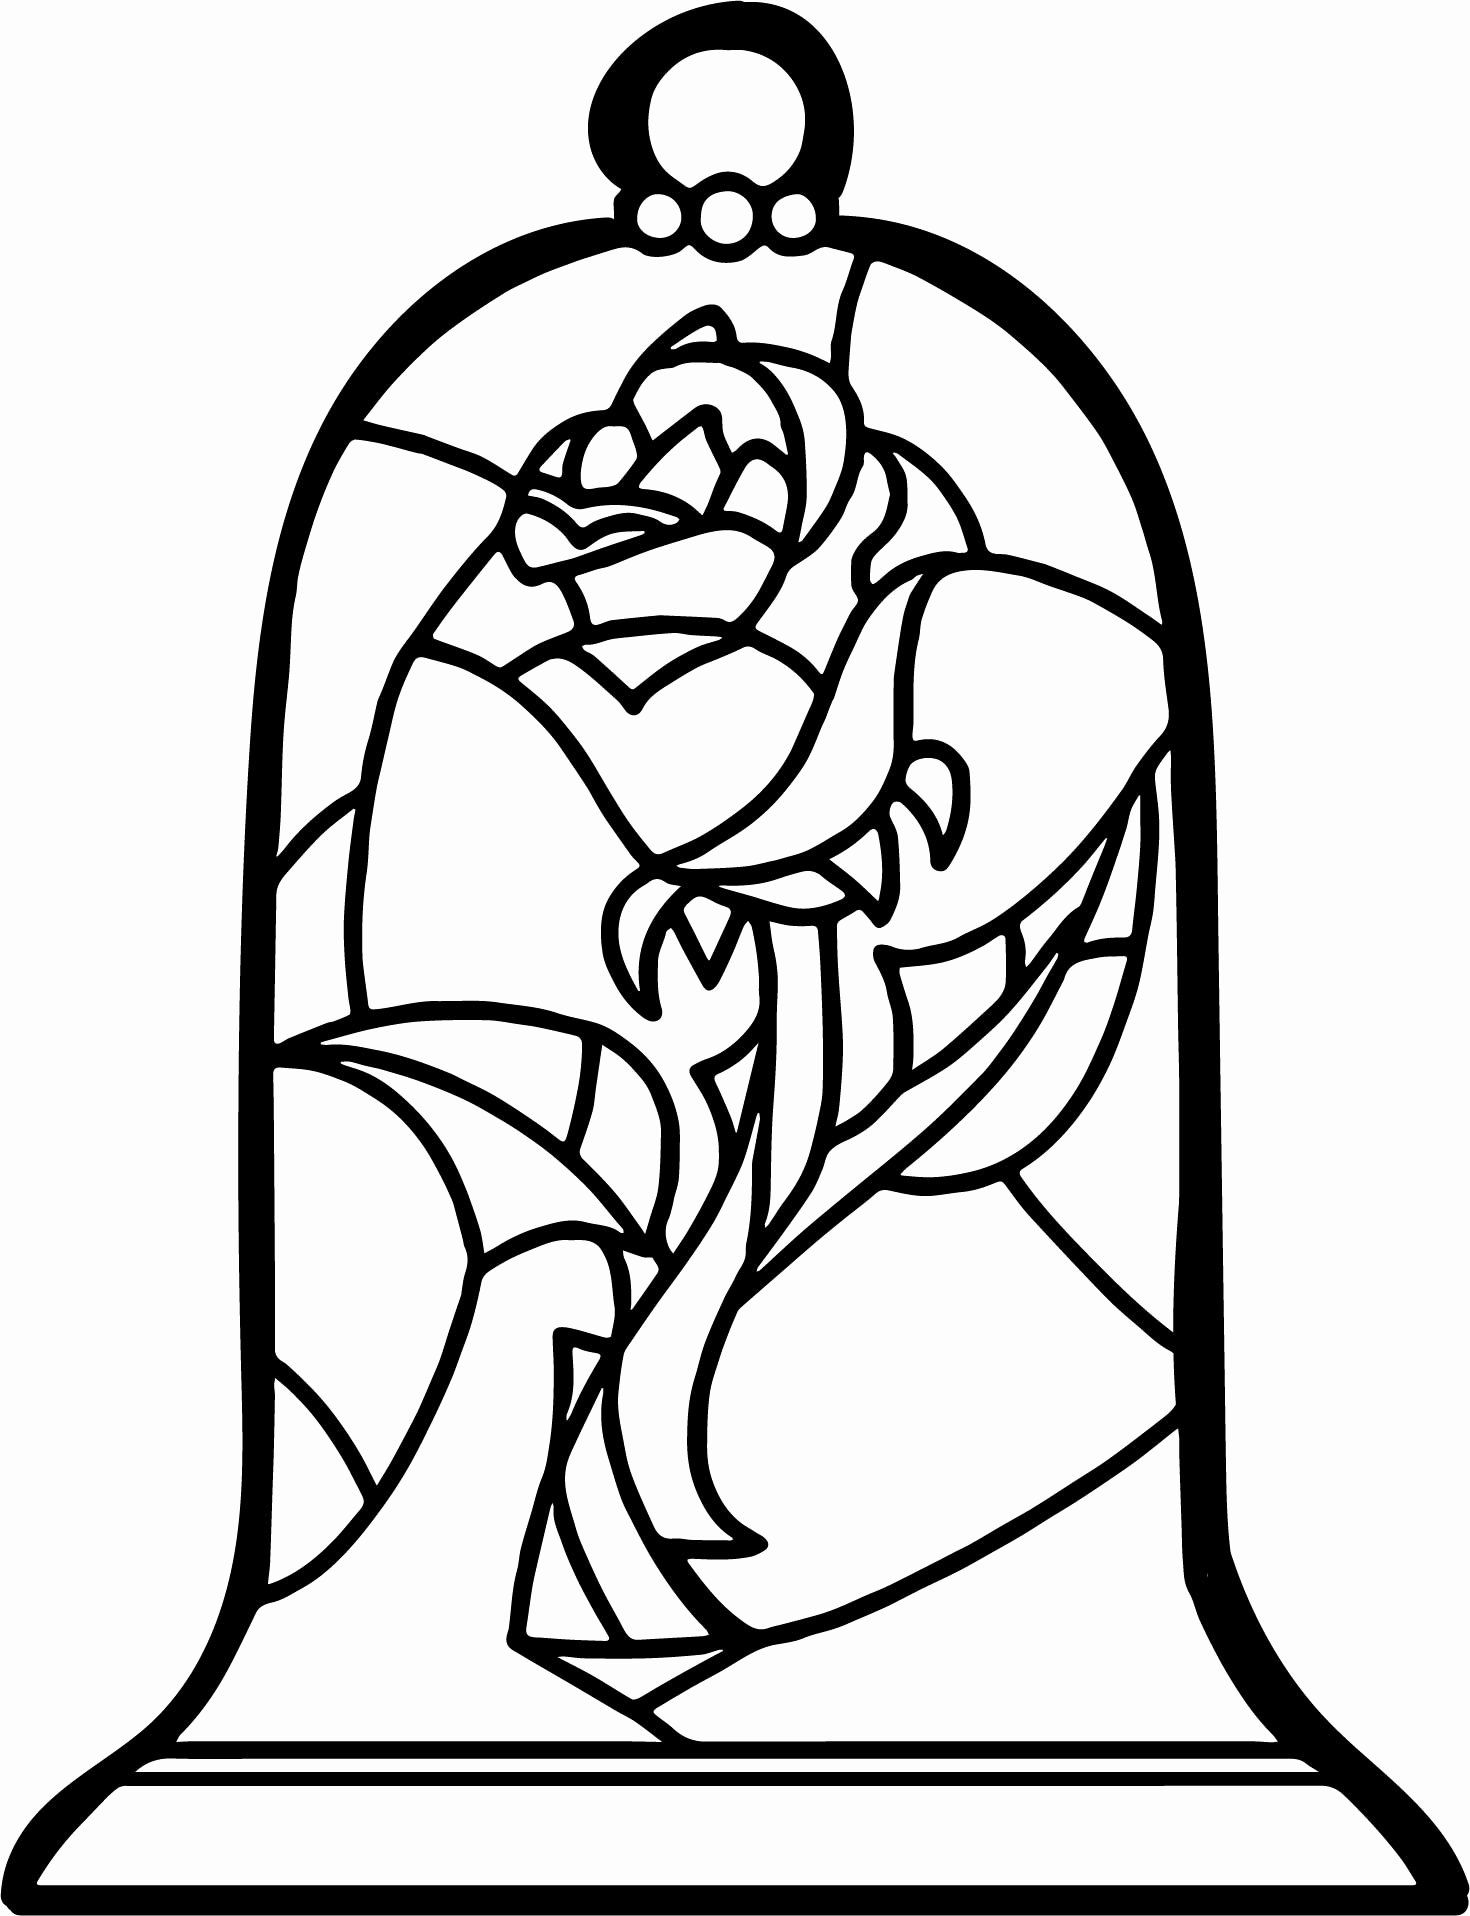 Beauty And The Beast Stained Glass Coloring Page New Stained Glass Rose Coloring Page In 2020 Rose Coloring Pages Stained Glass Rose Disney Stained Glass